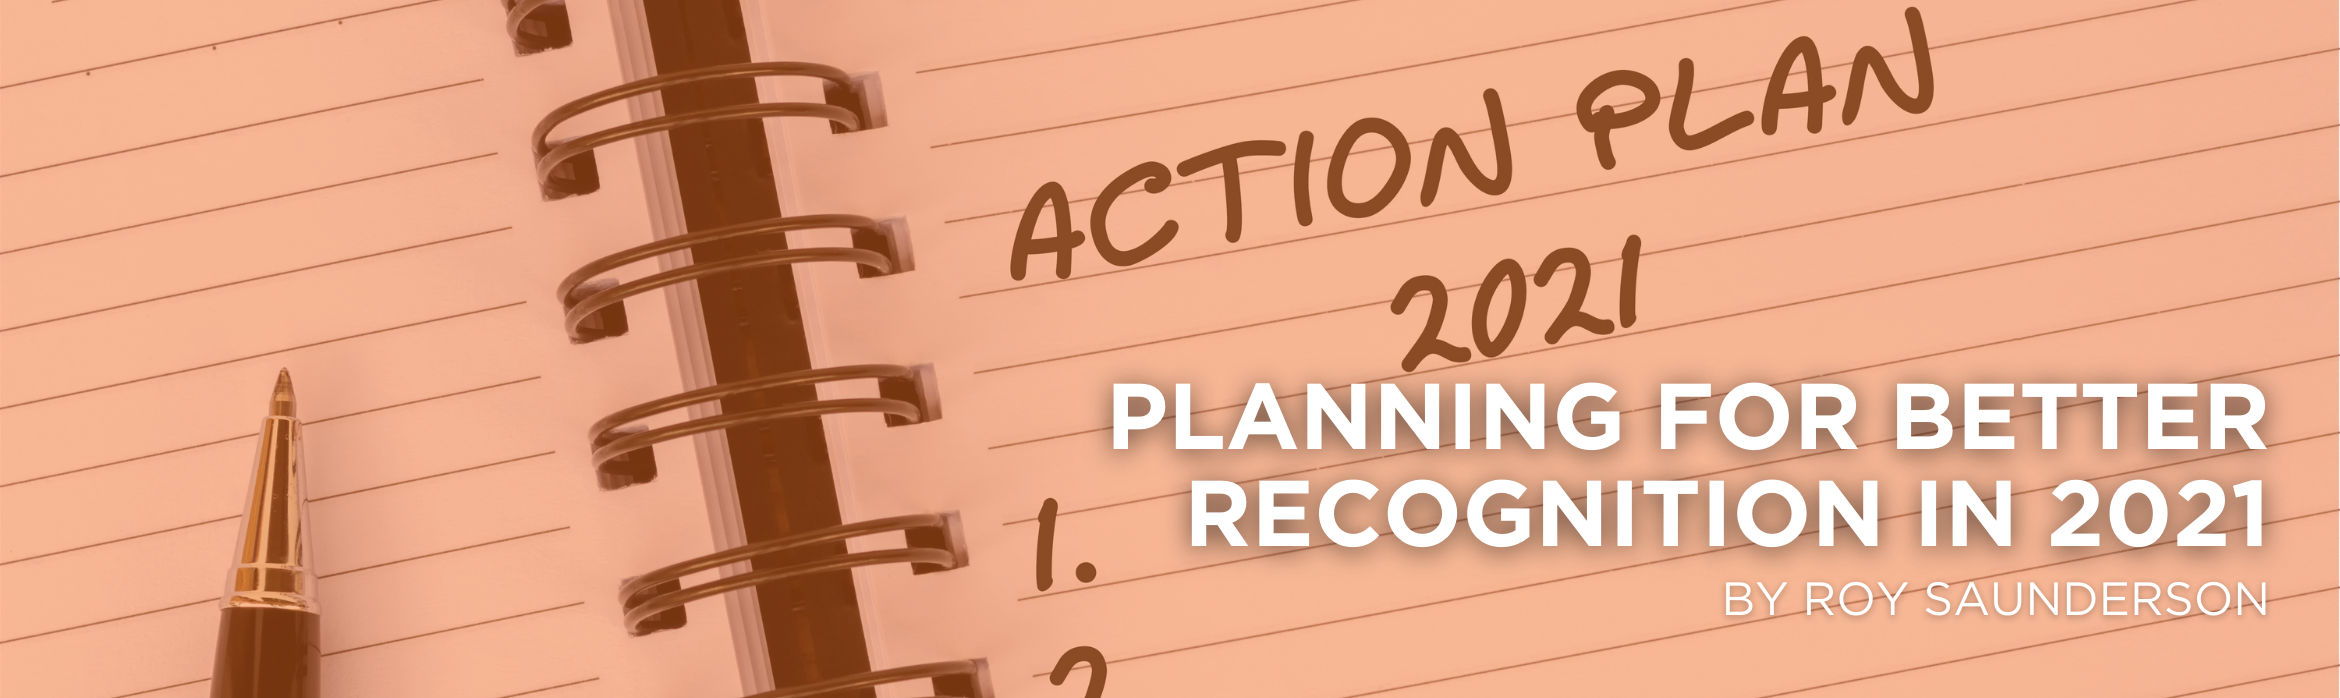 Planning for Better Recognition in 2021